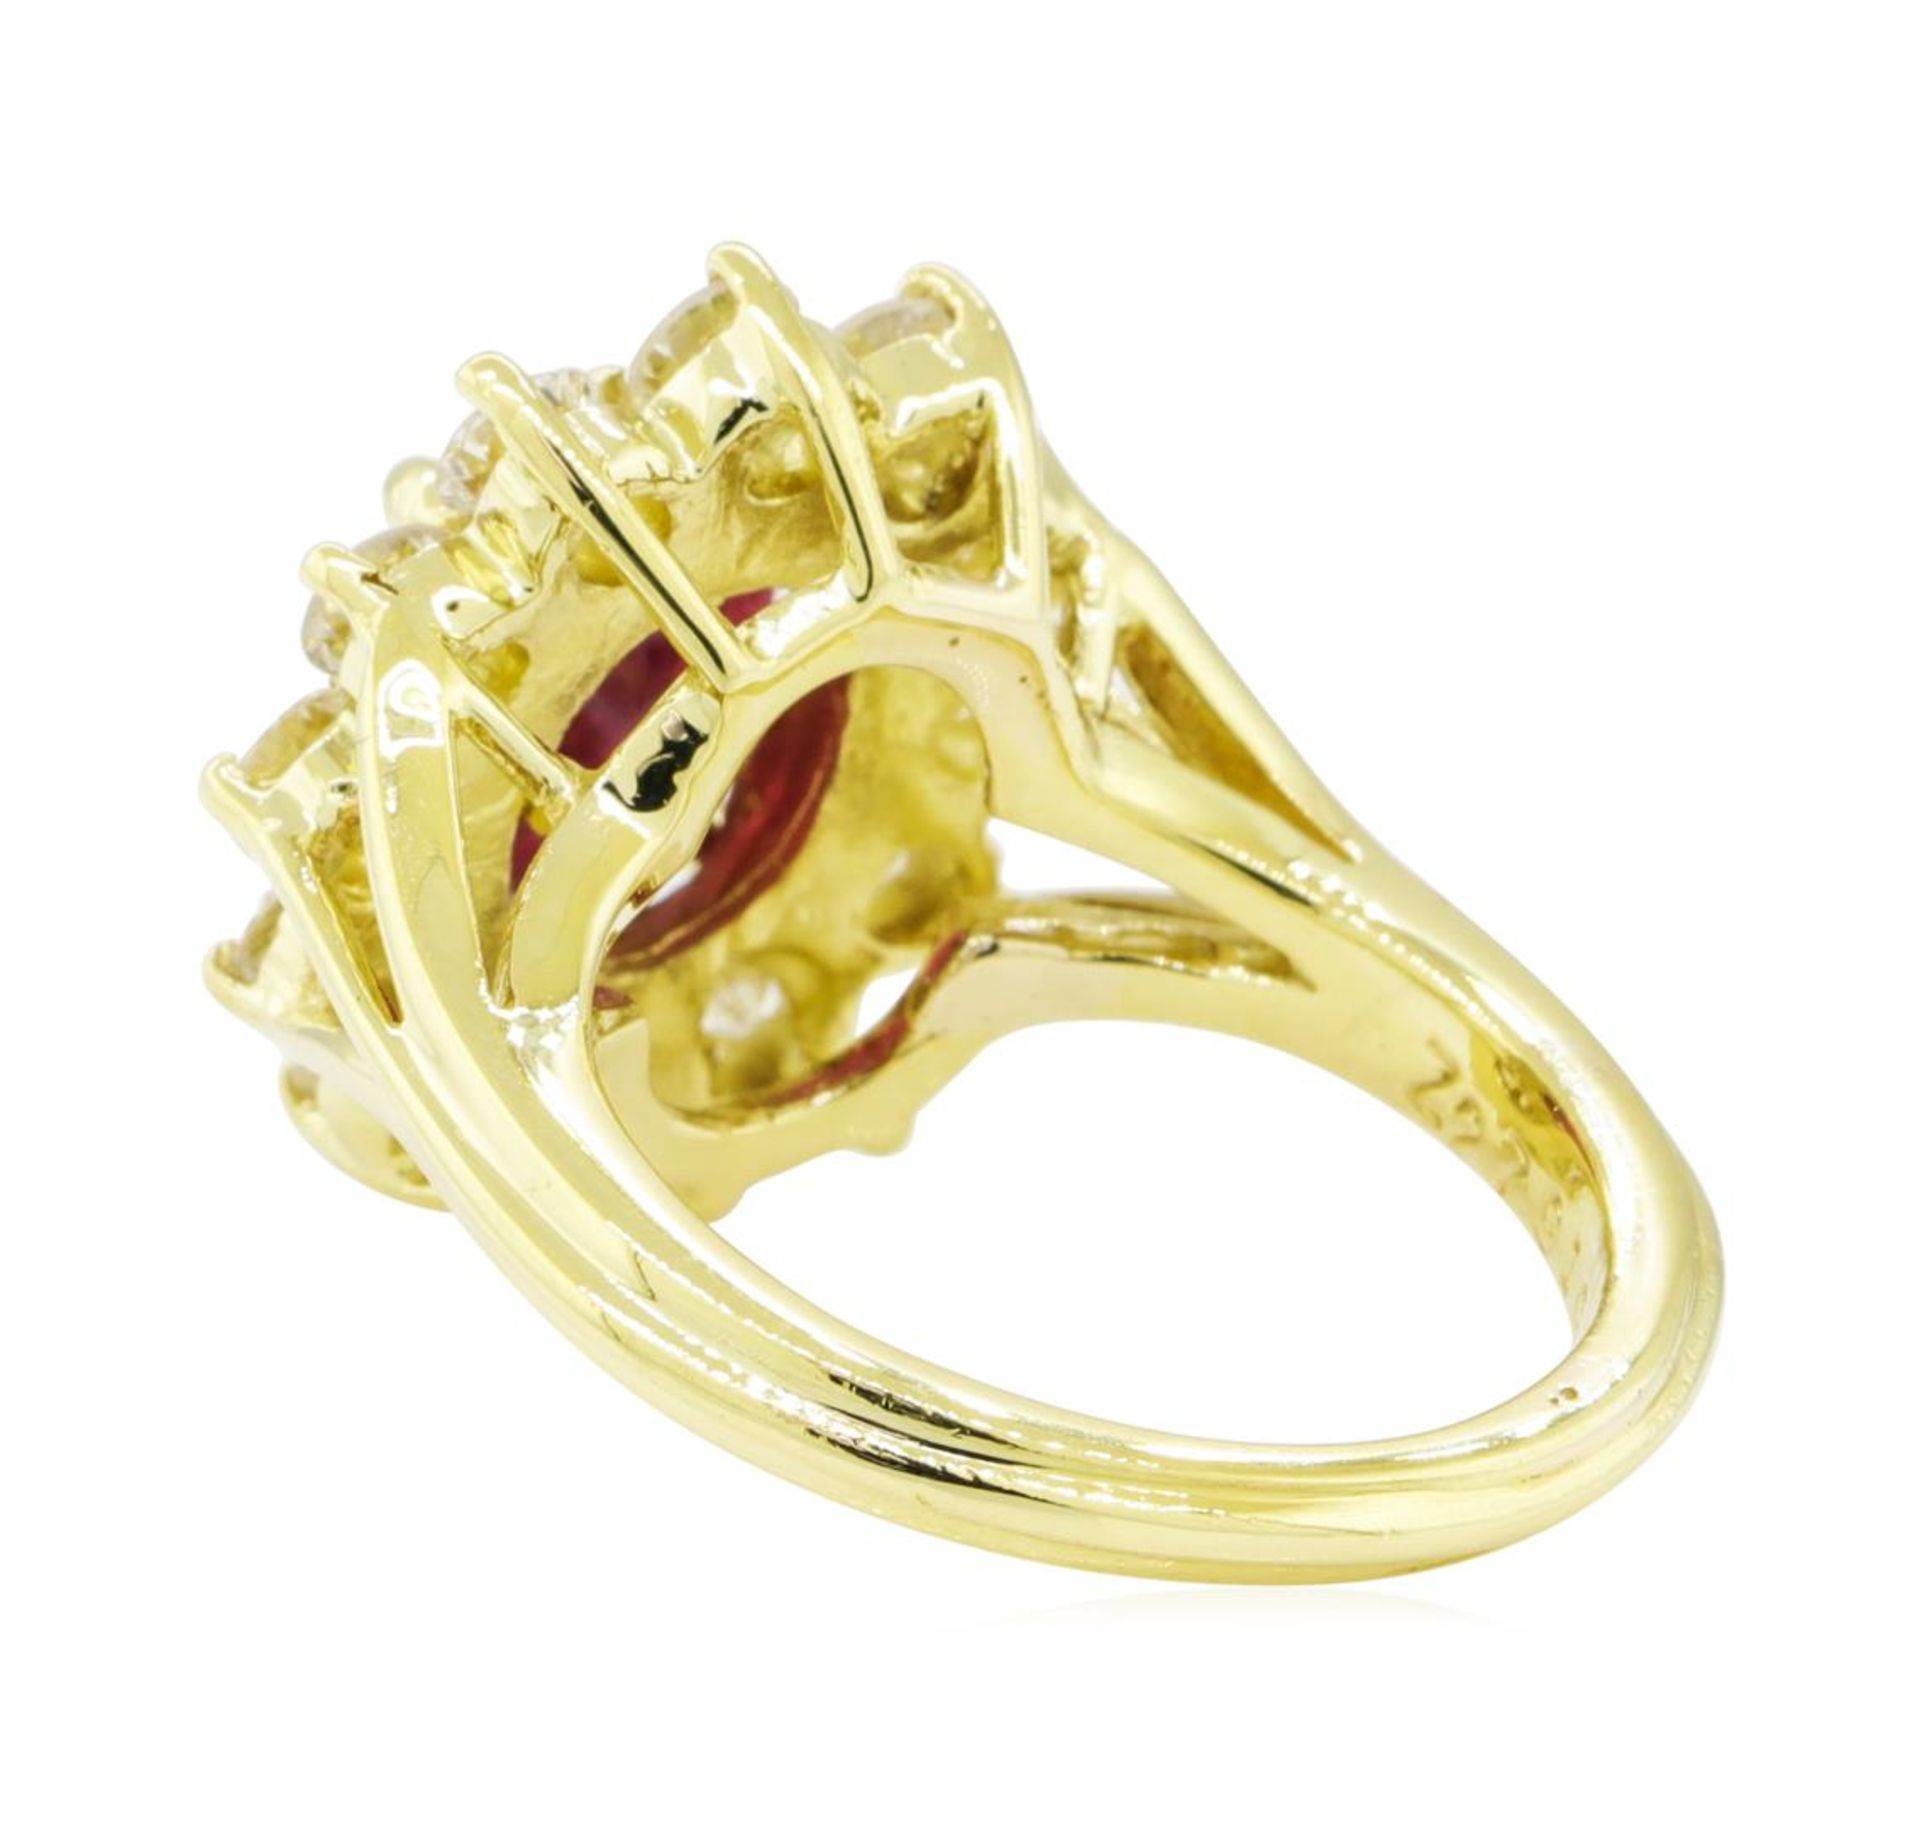 5.51 ctw Ruby and Diamond Ring - 18KT Yellow Gold - Image 3 of 5